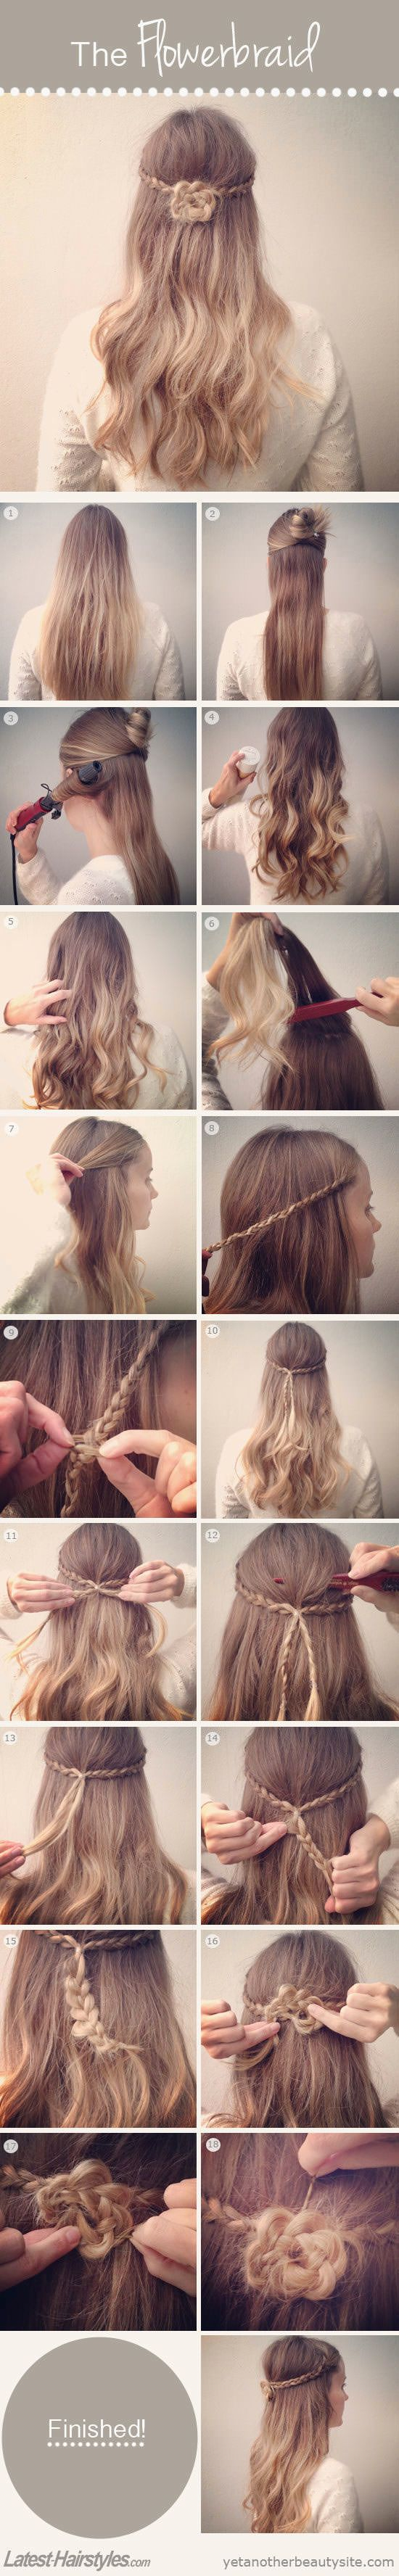 Love love love this flower braid. C'mon spring!     Full steps and tips here: http://www.latest-hairstyles.com/tutorials/flower-braid.html